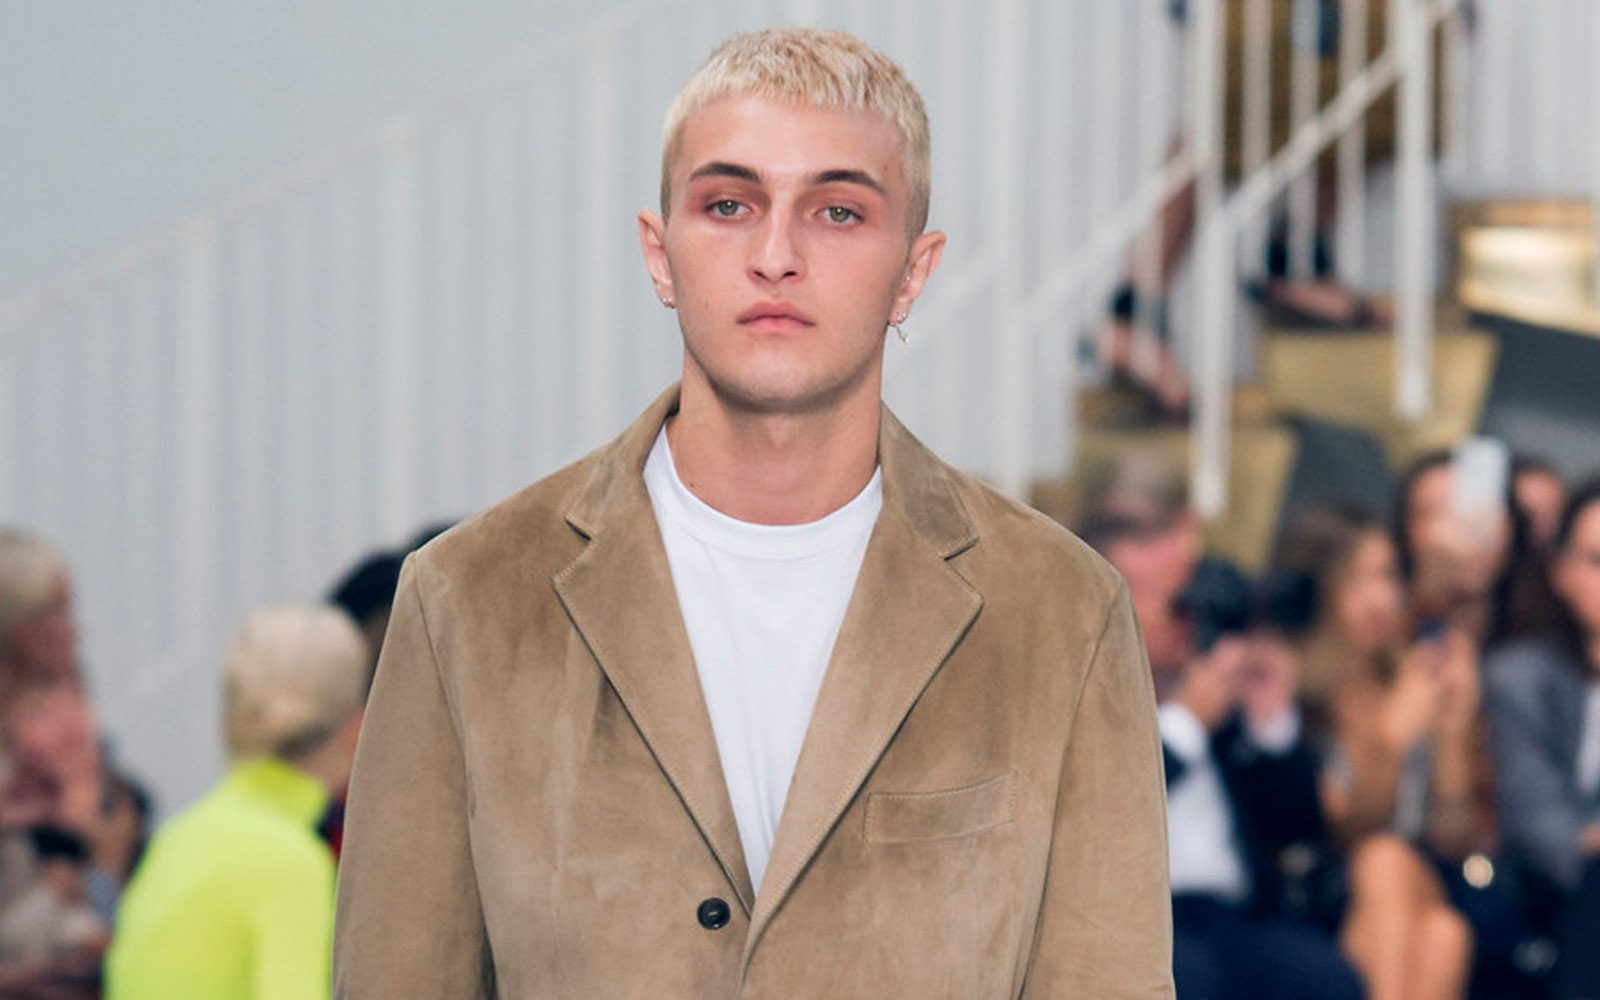 Bleach White Platinum Hair Anwar Hadid